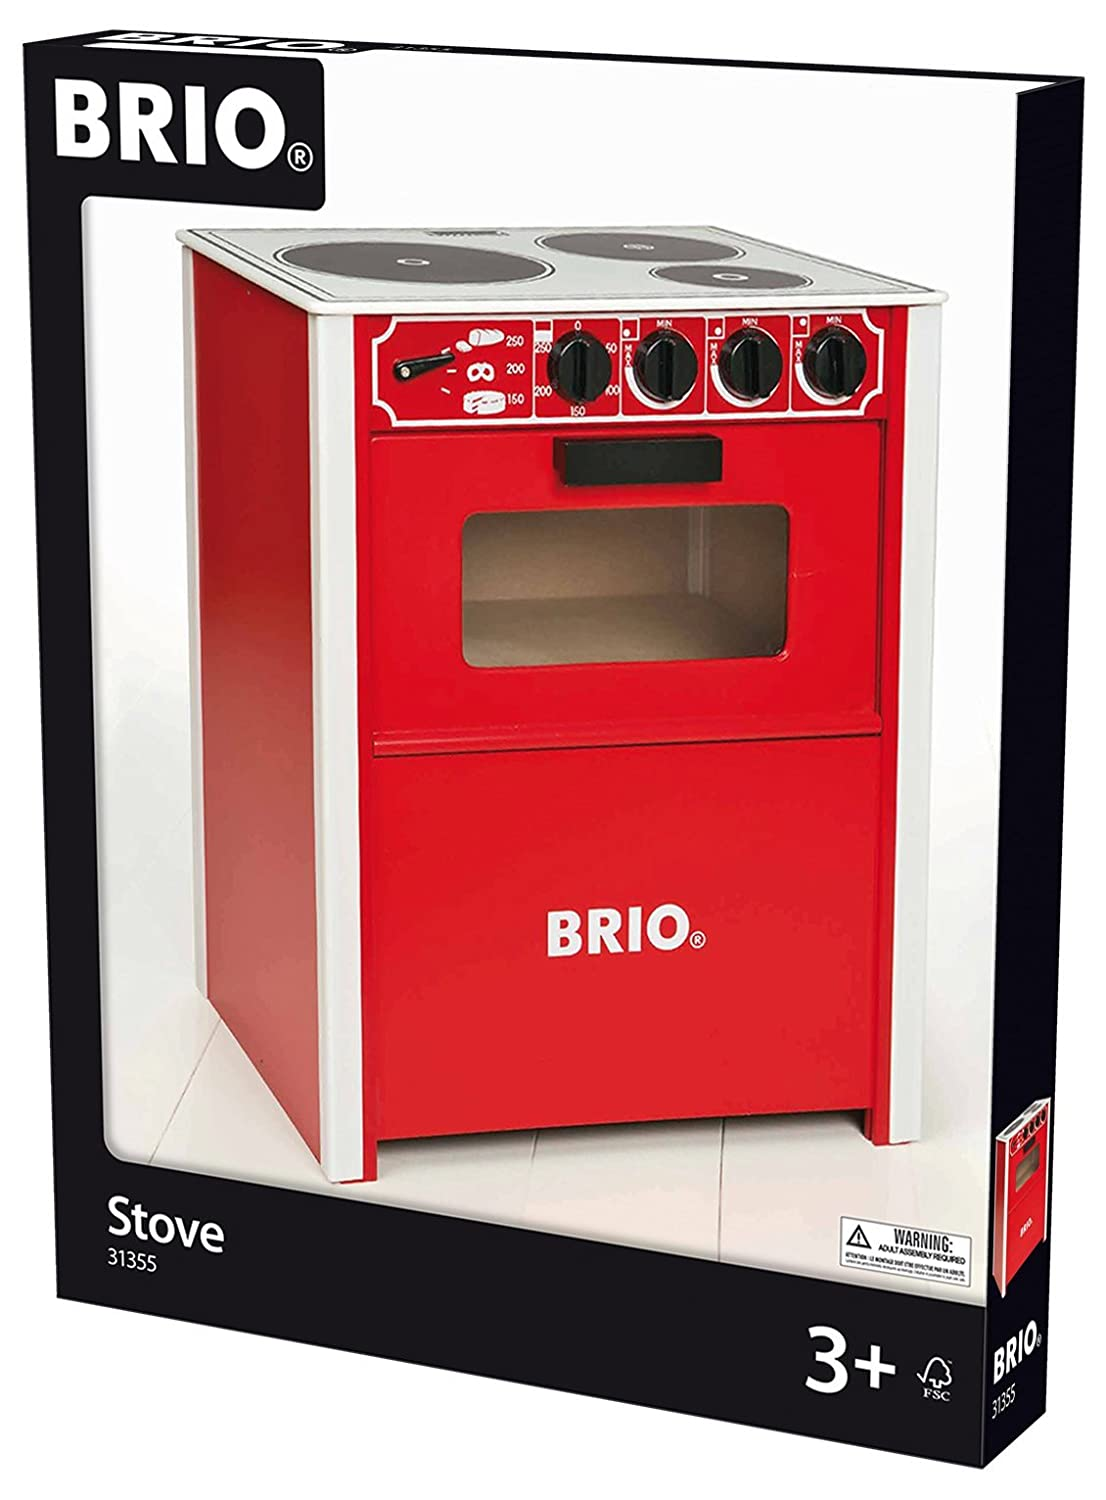 BRIO Kitchen Oven - Red 31355 Development & Learning Activity Toys First Learning